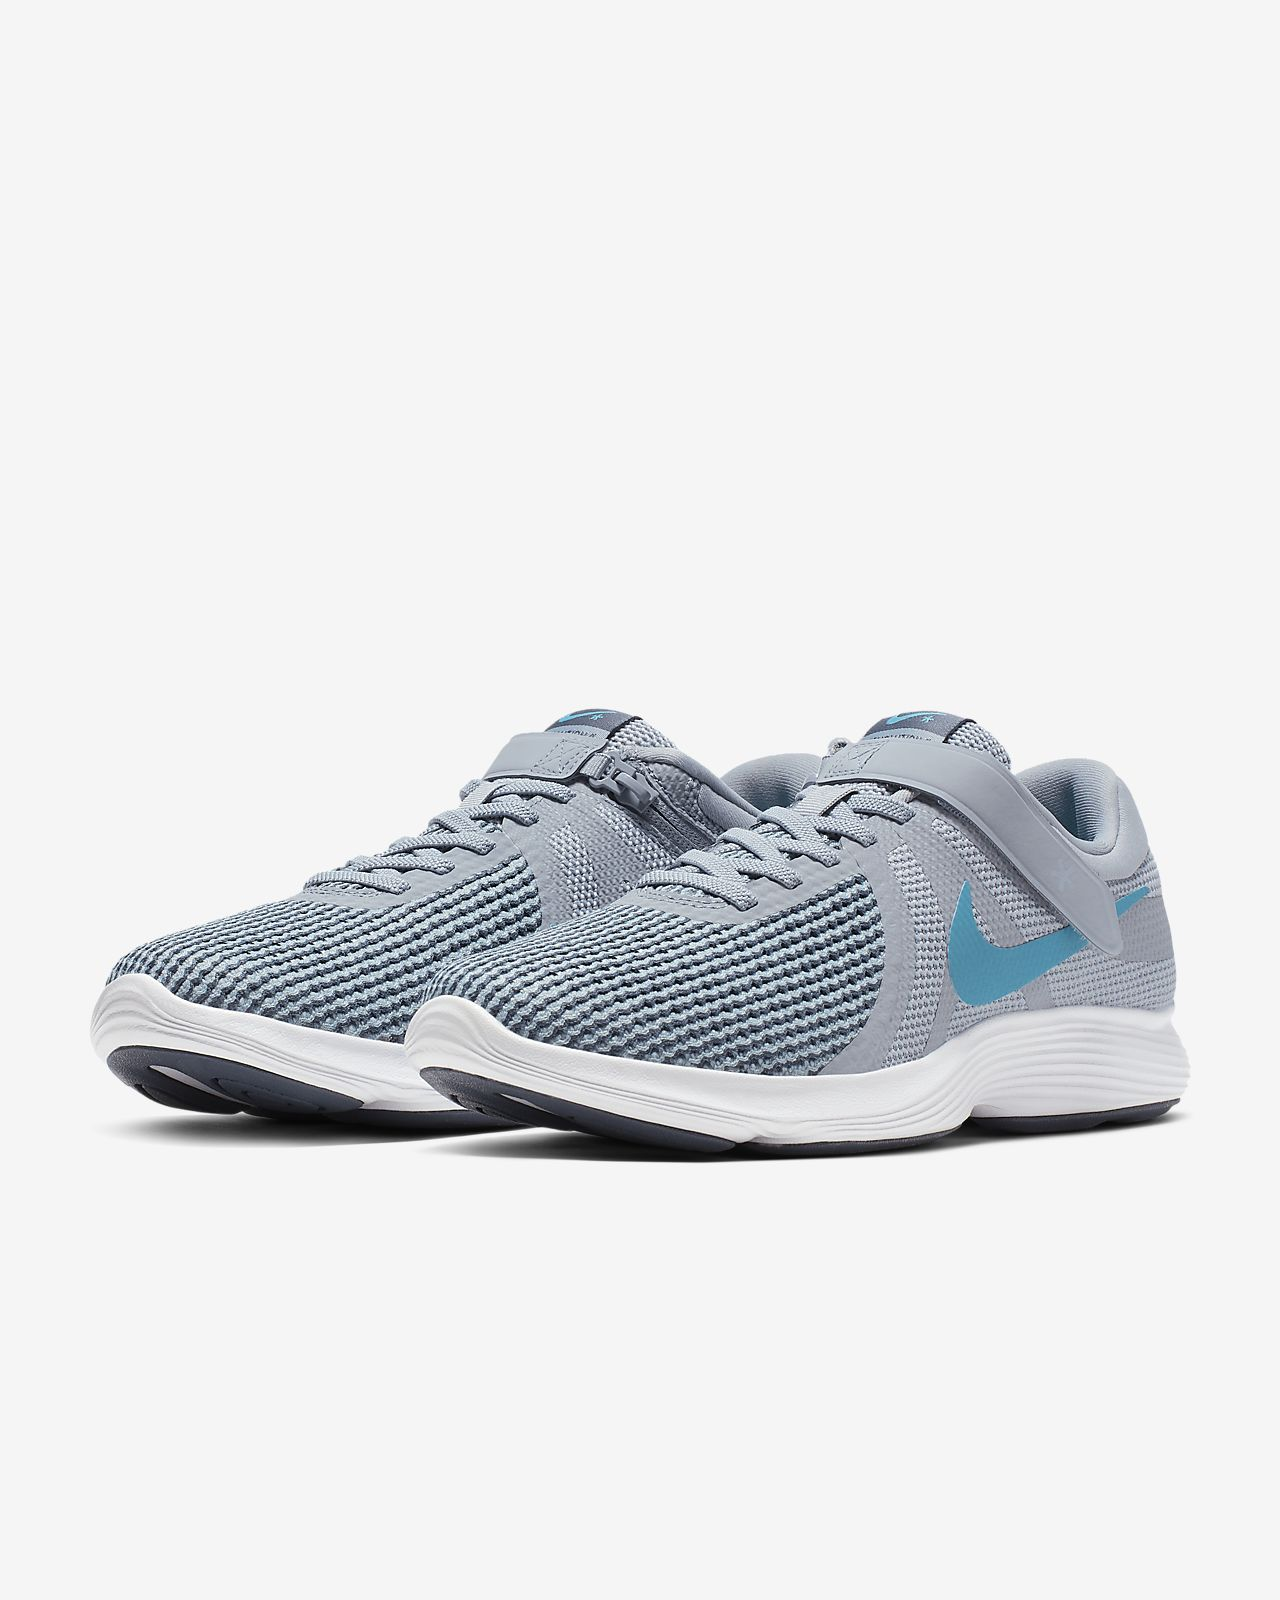 363d712d9ca Low Resolution Nike Revolution 4 FlyEase Men s Running Shoe Nike Revolution  4 FlyEase Men s Running Shoe